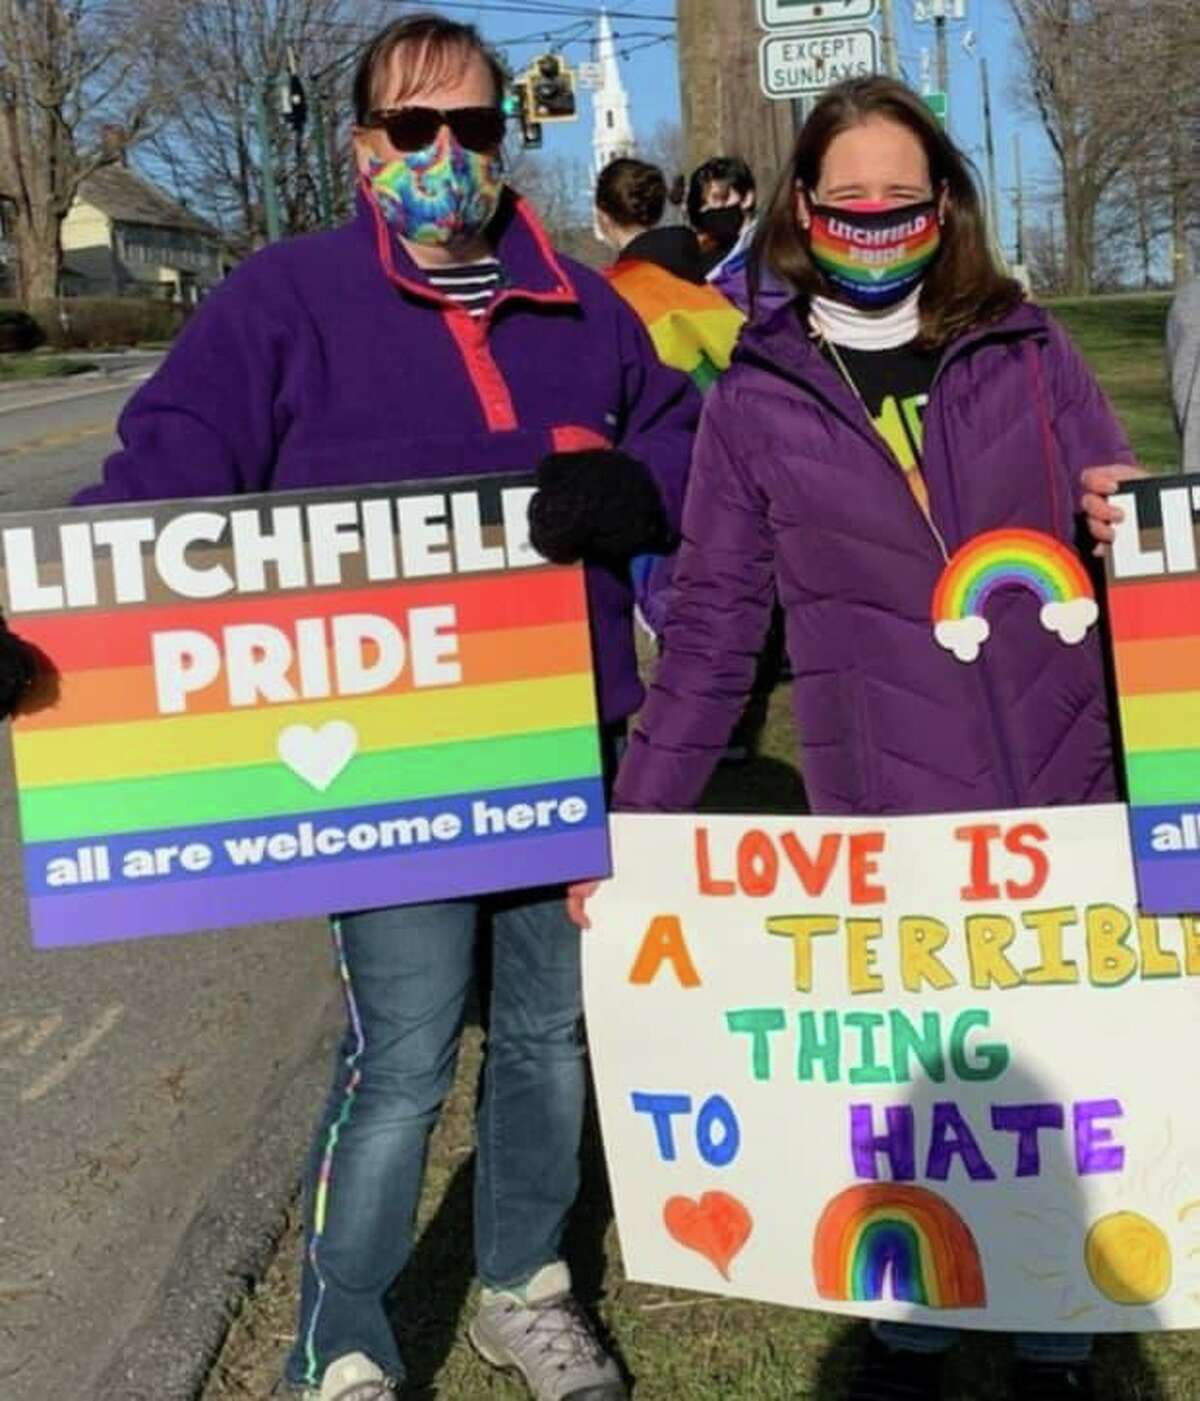 From right, Litchfield residents Sarah Carr and Julie Mitchell Lombardi at a rally for Equality, Acceptance and Love.